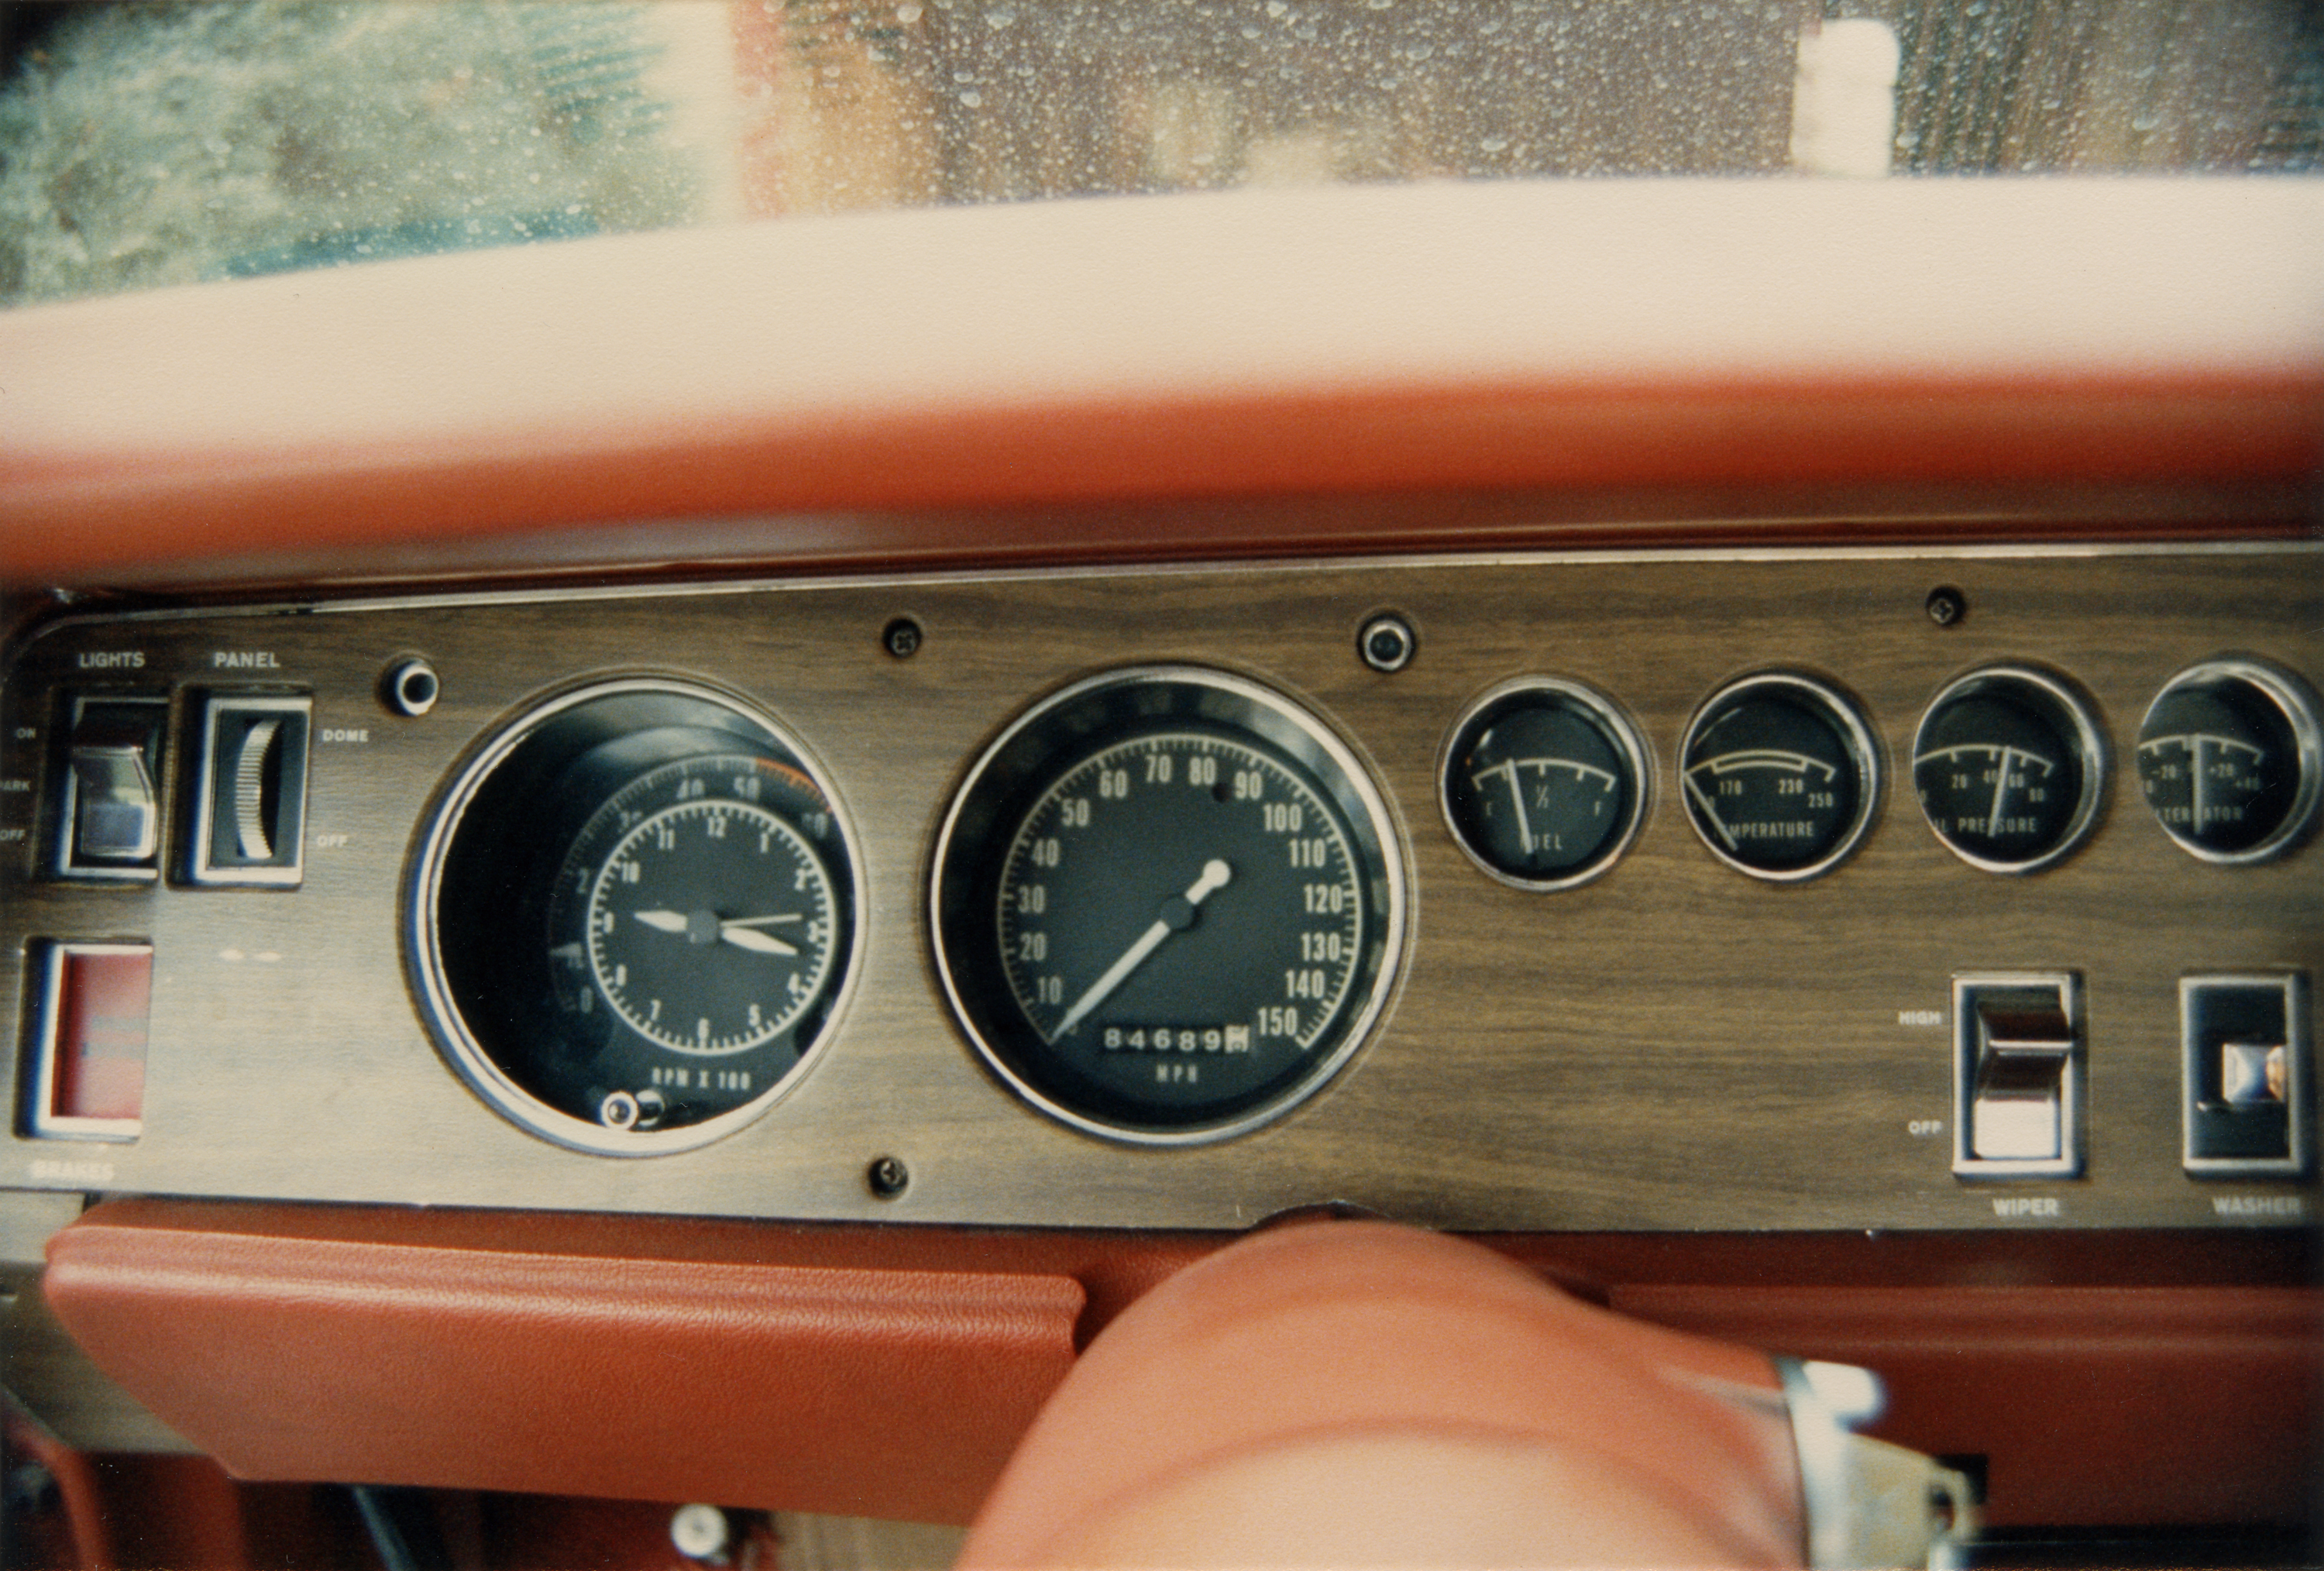 1970 Plymouth GTX Gauge Cluster